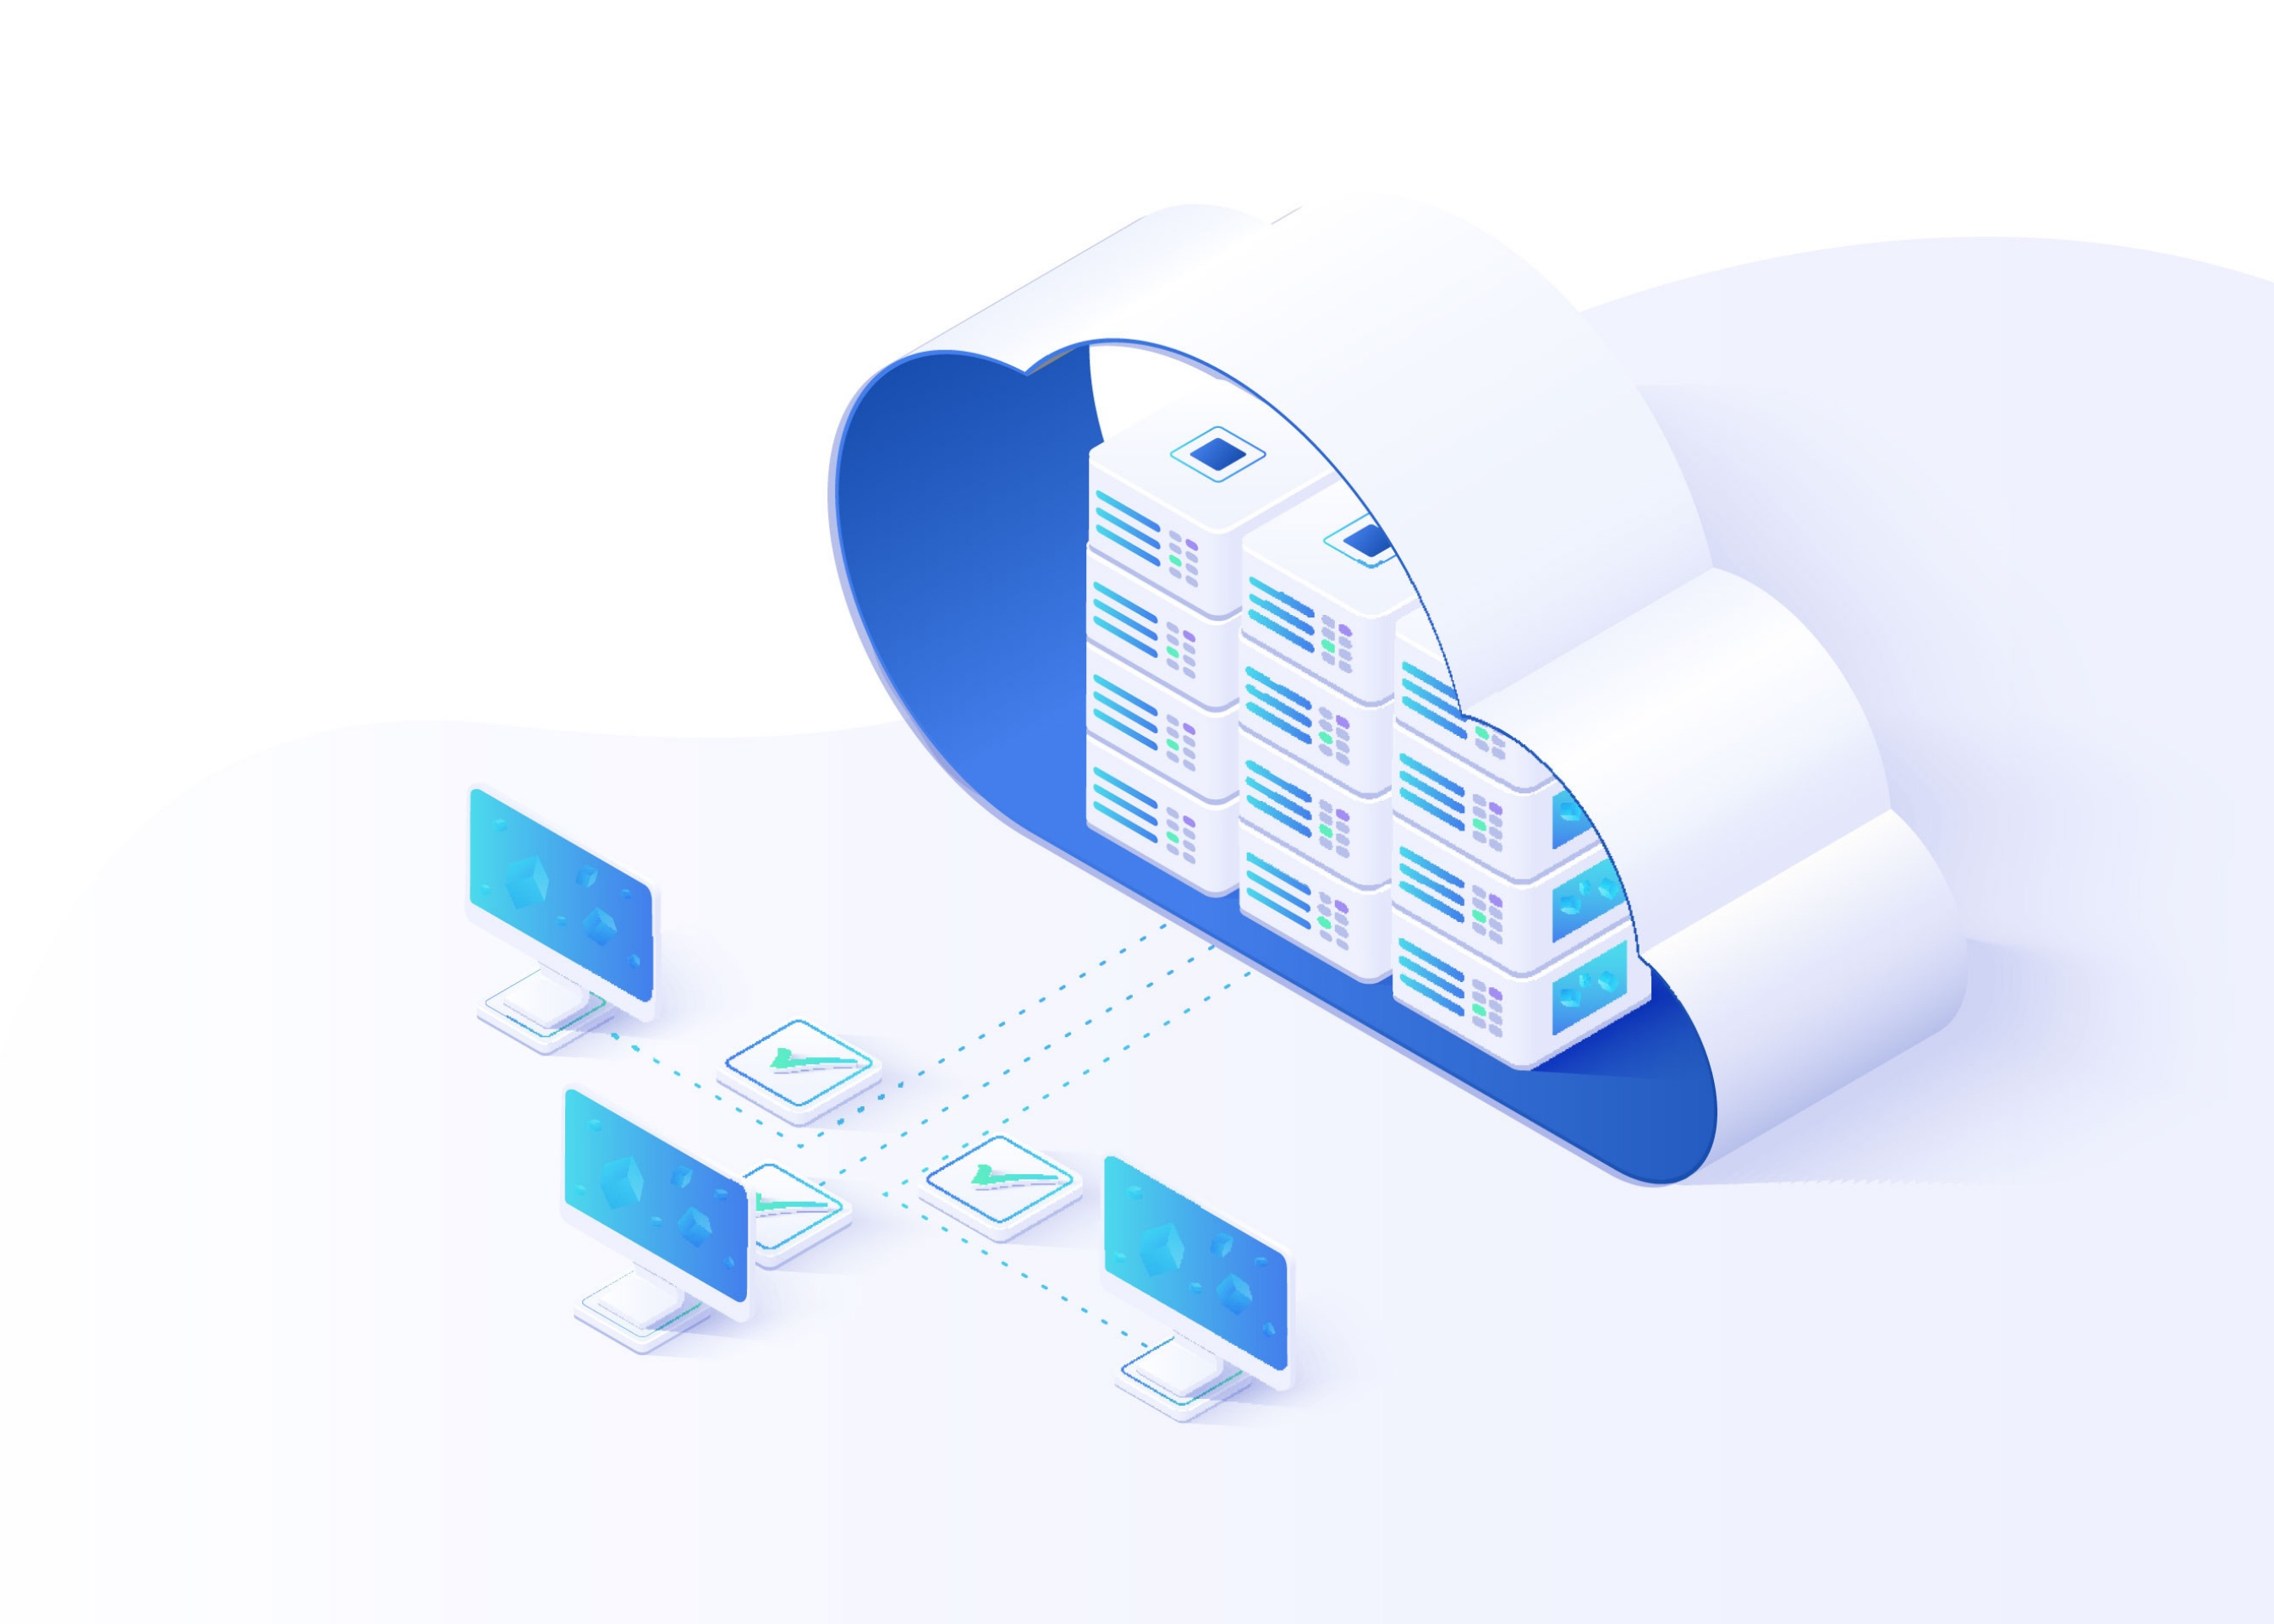 Isos - 3 info for IT managers